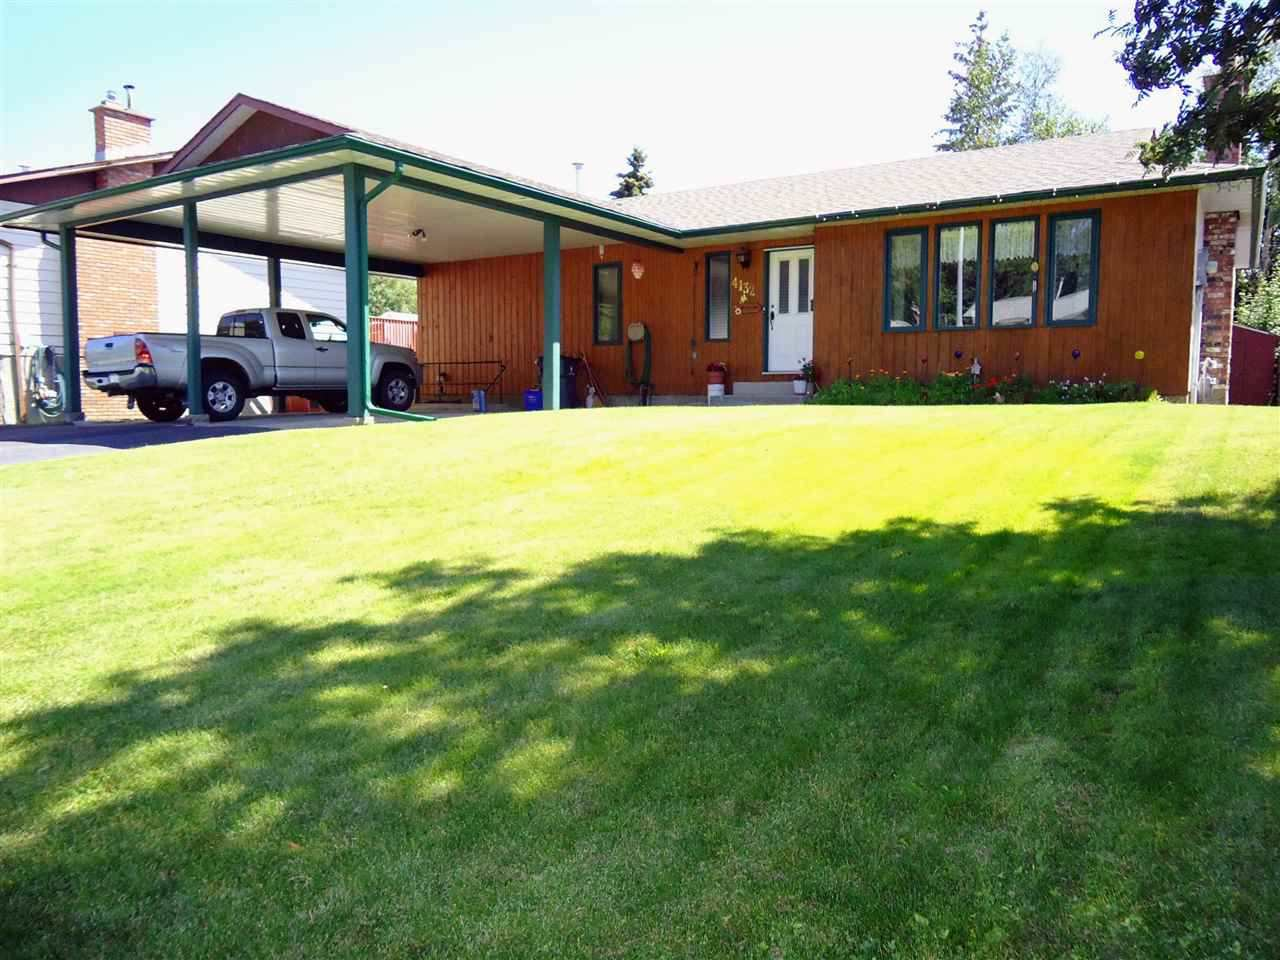 Main Photo: 4132 BAKER Road in Prince George: Charella/Starlane House for sale (PG City South (Zone 74))  : MLS®# R2369031